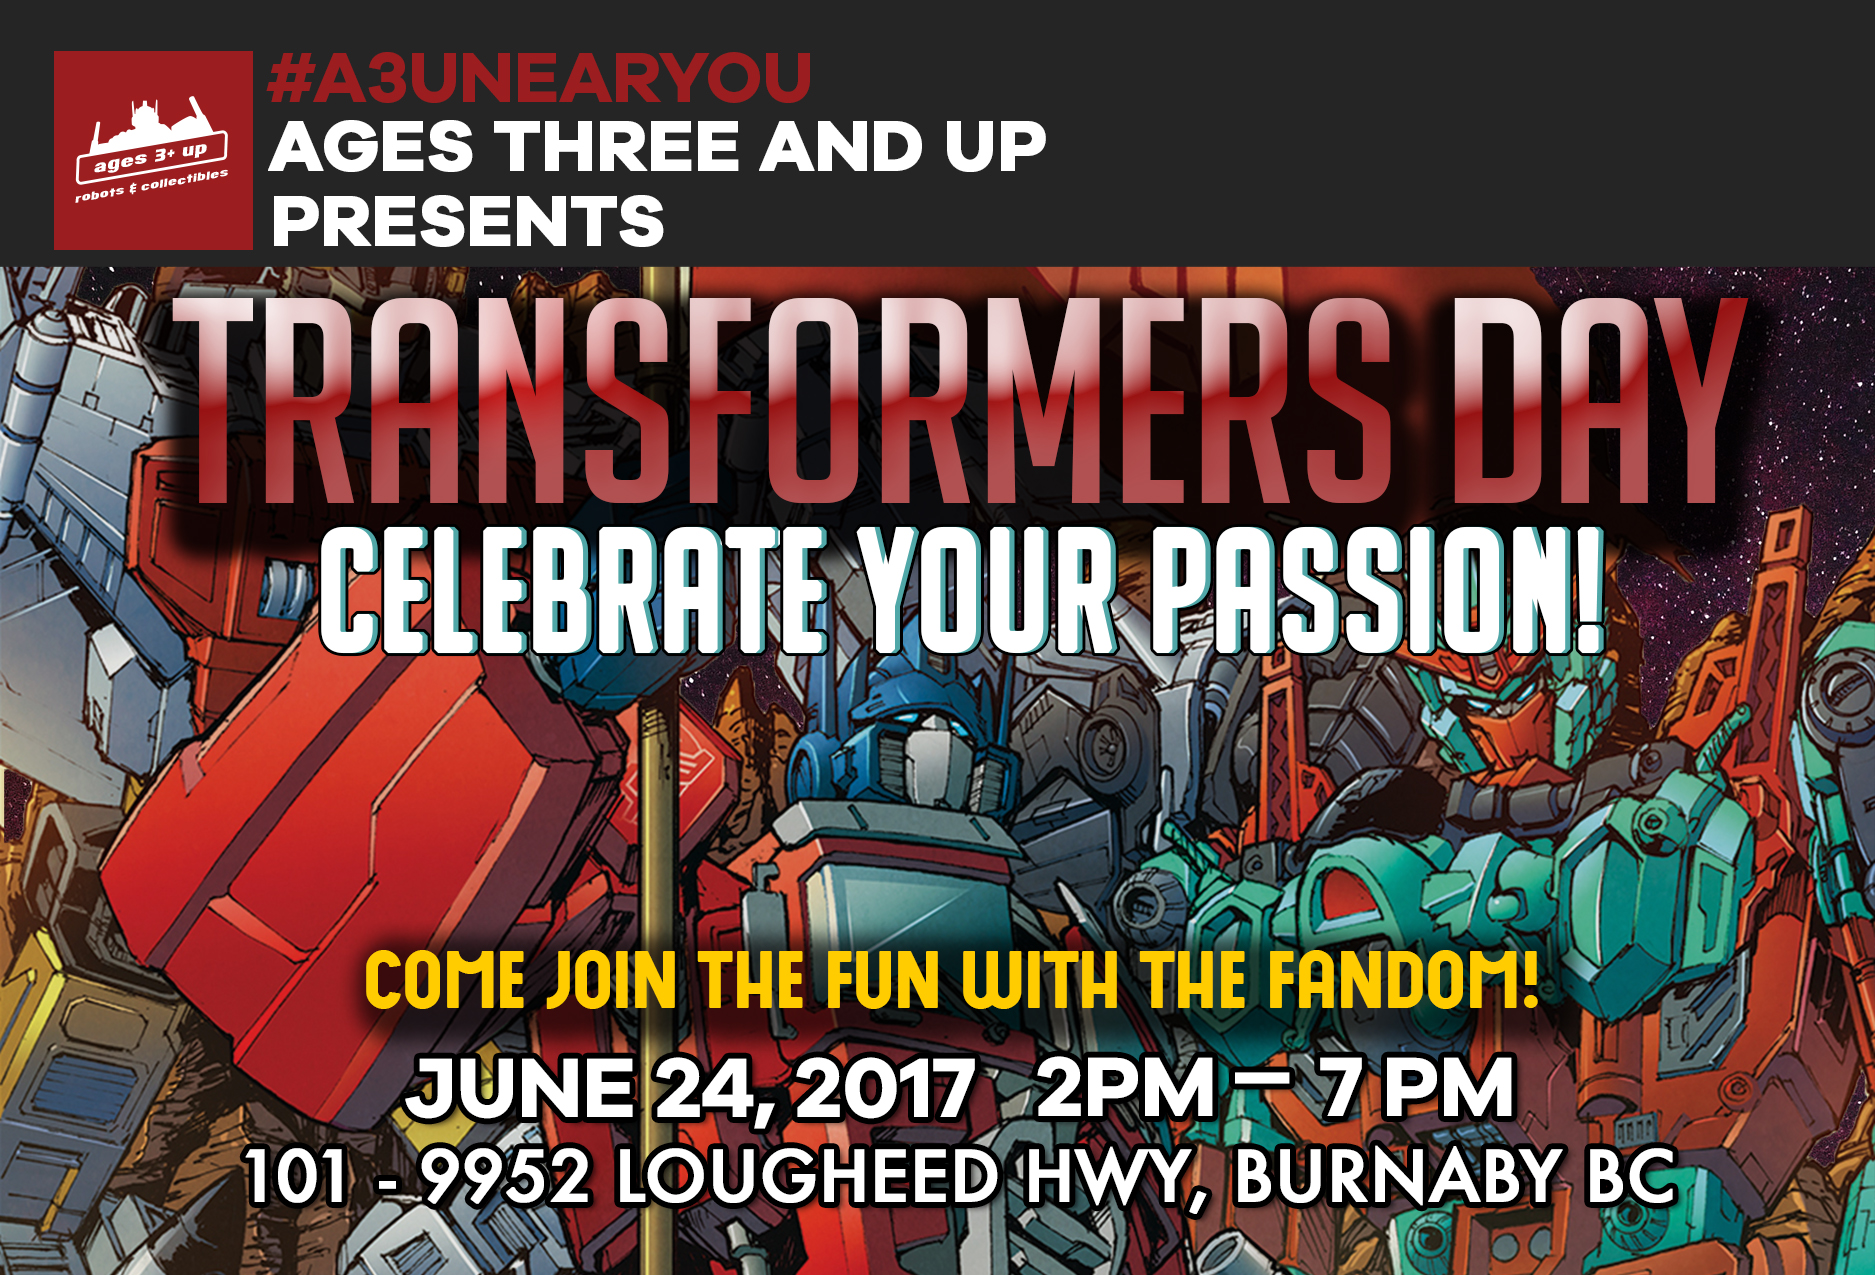 Ages Three And Up Presents: Transformers Day!